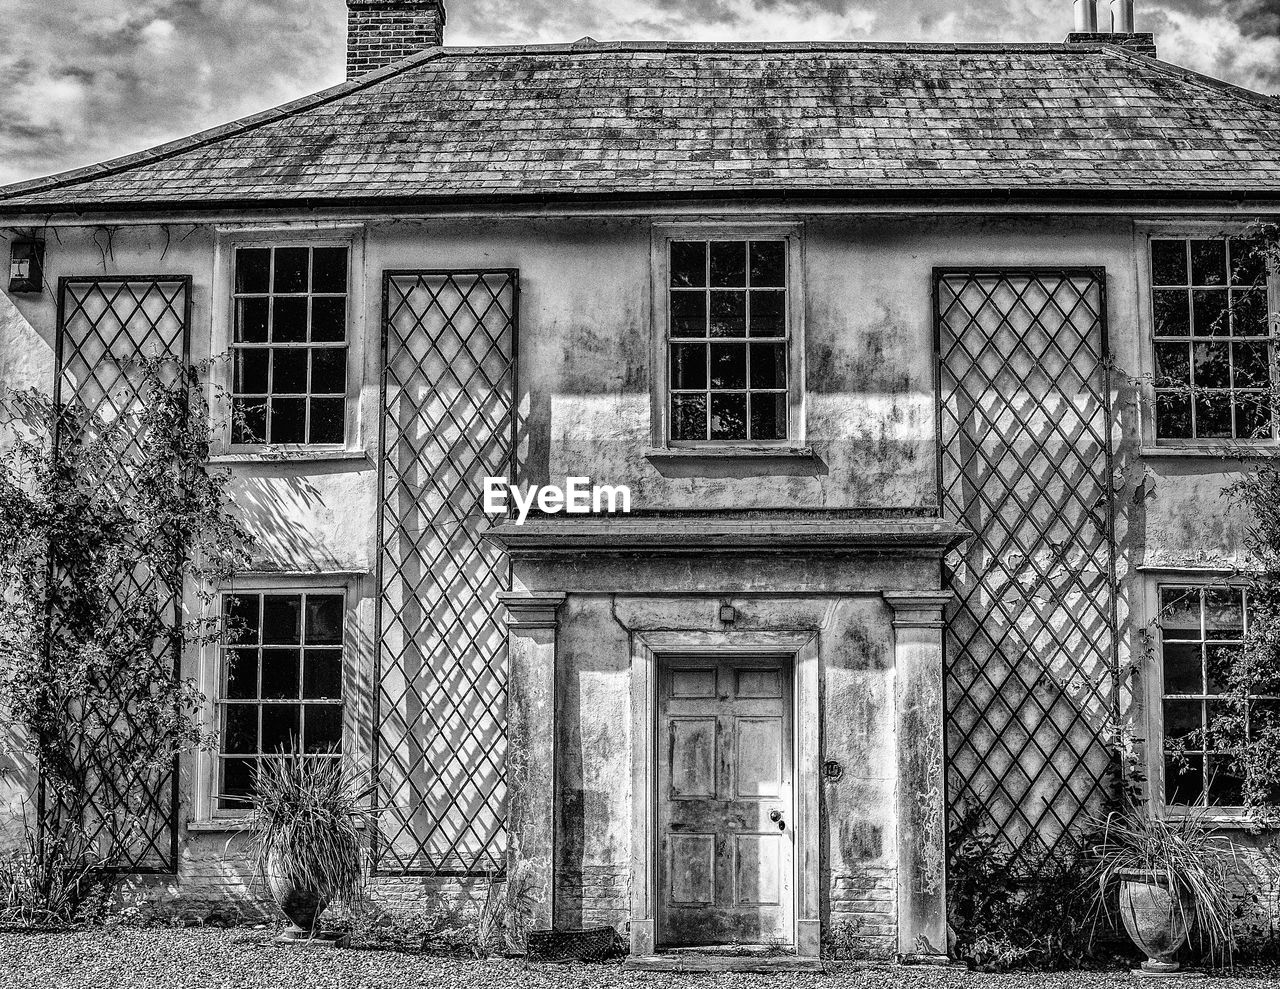 architecture, built structure, building exterior, building, window, day, old, house, no people, residential district, entrance, door, outdoors, abandoned, nature, closed, exterior, roof, history, facade